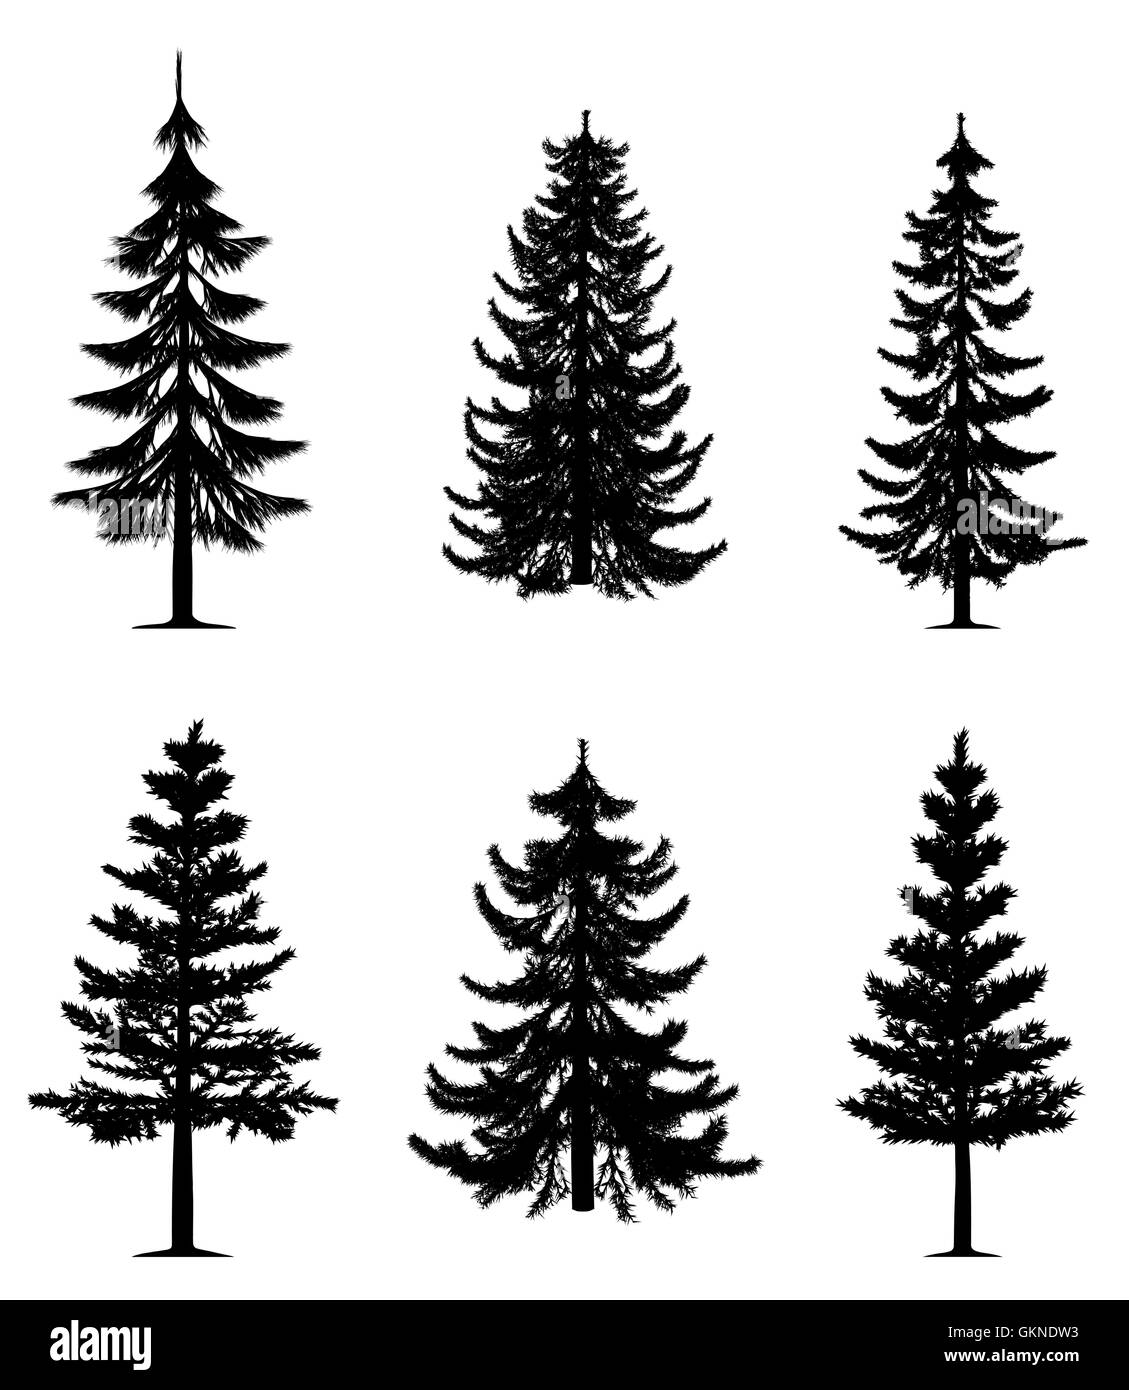 Tree Trees Pine Fir Conifer Silhouette Christmas Vector